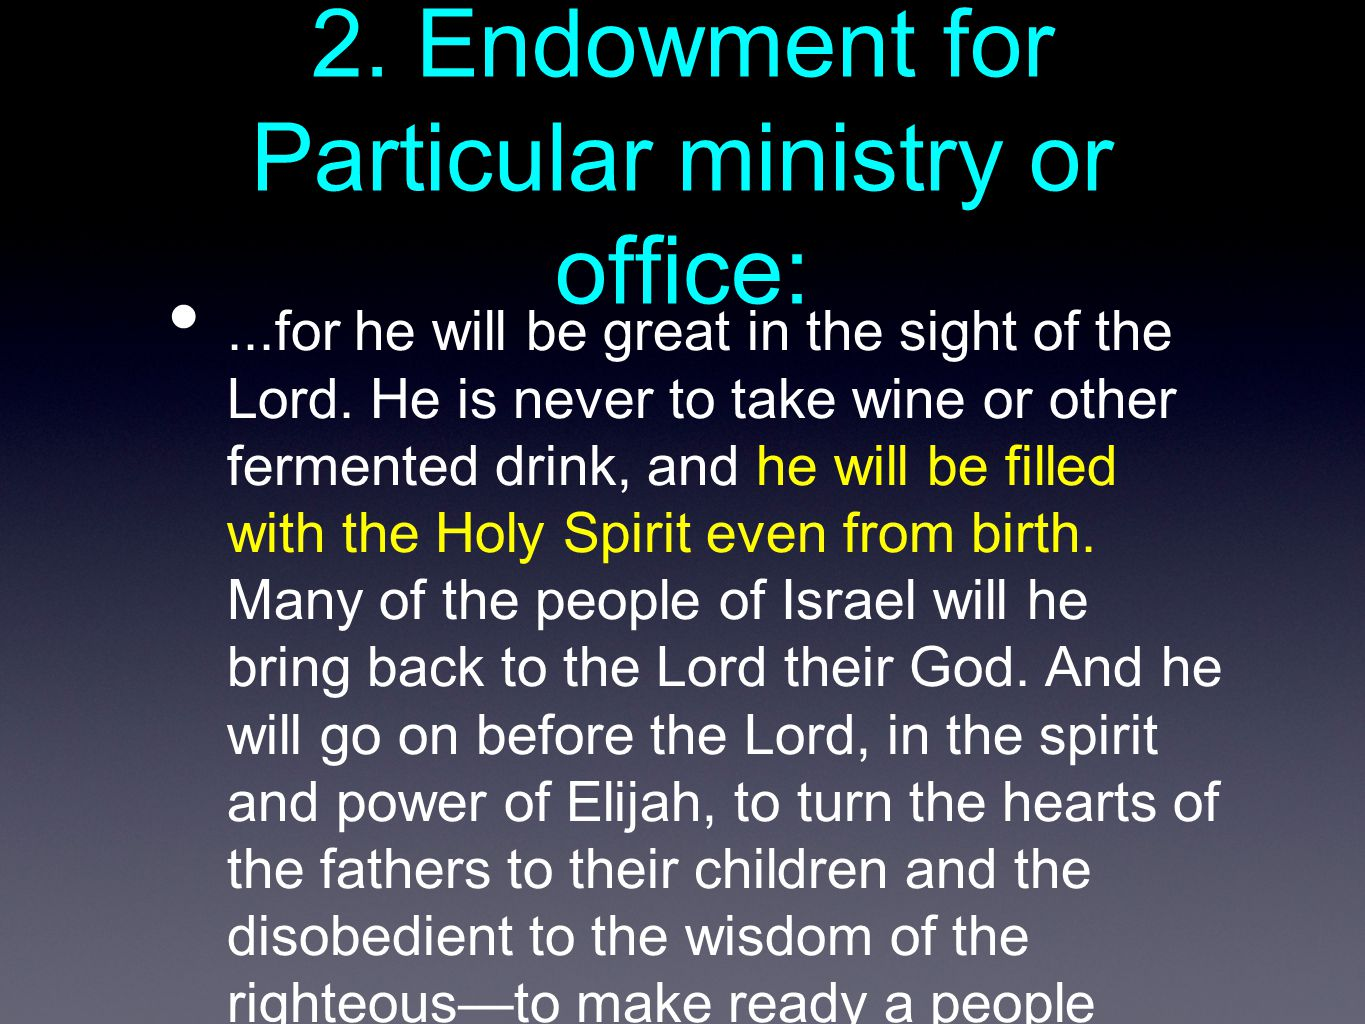 2. Endowment for Particular ministry or office: